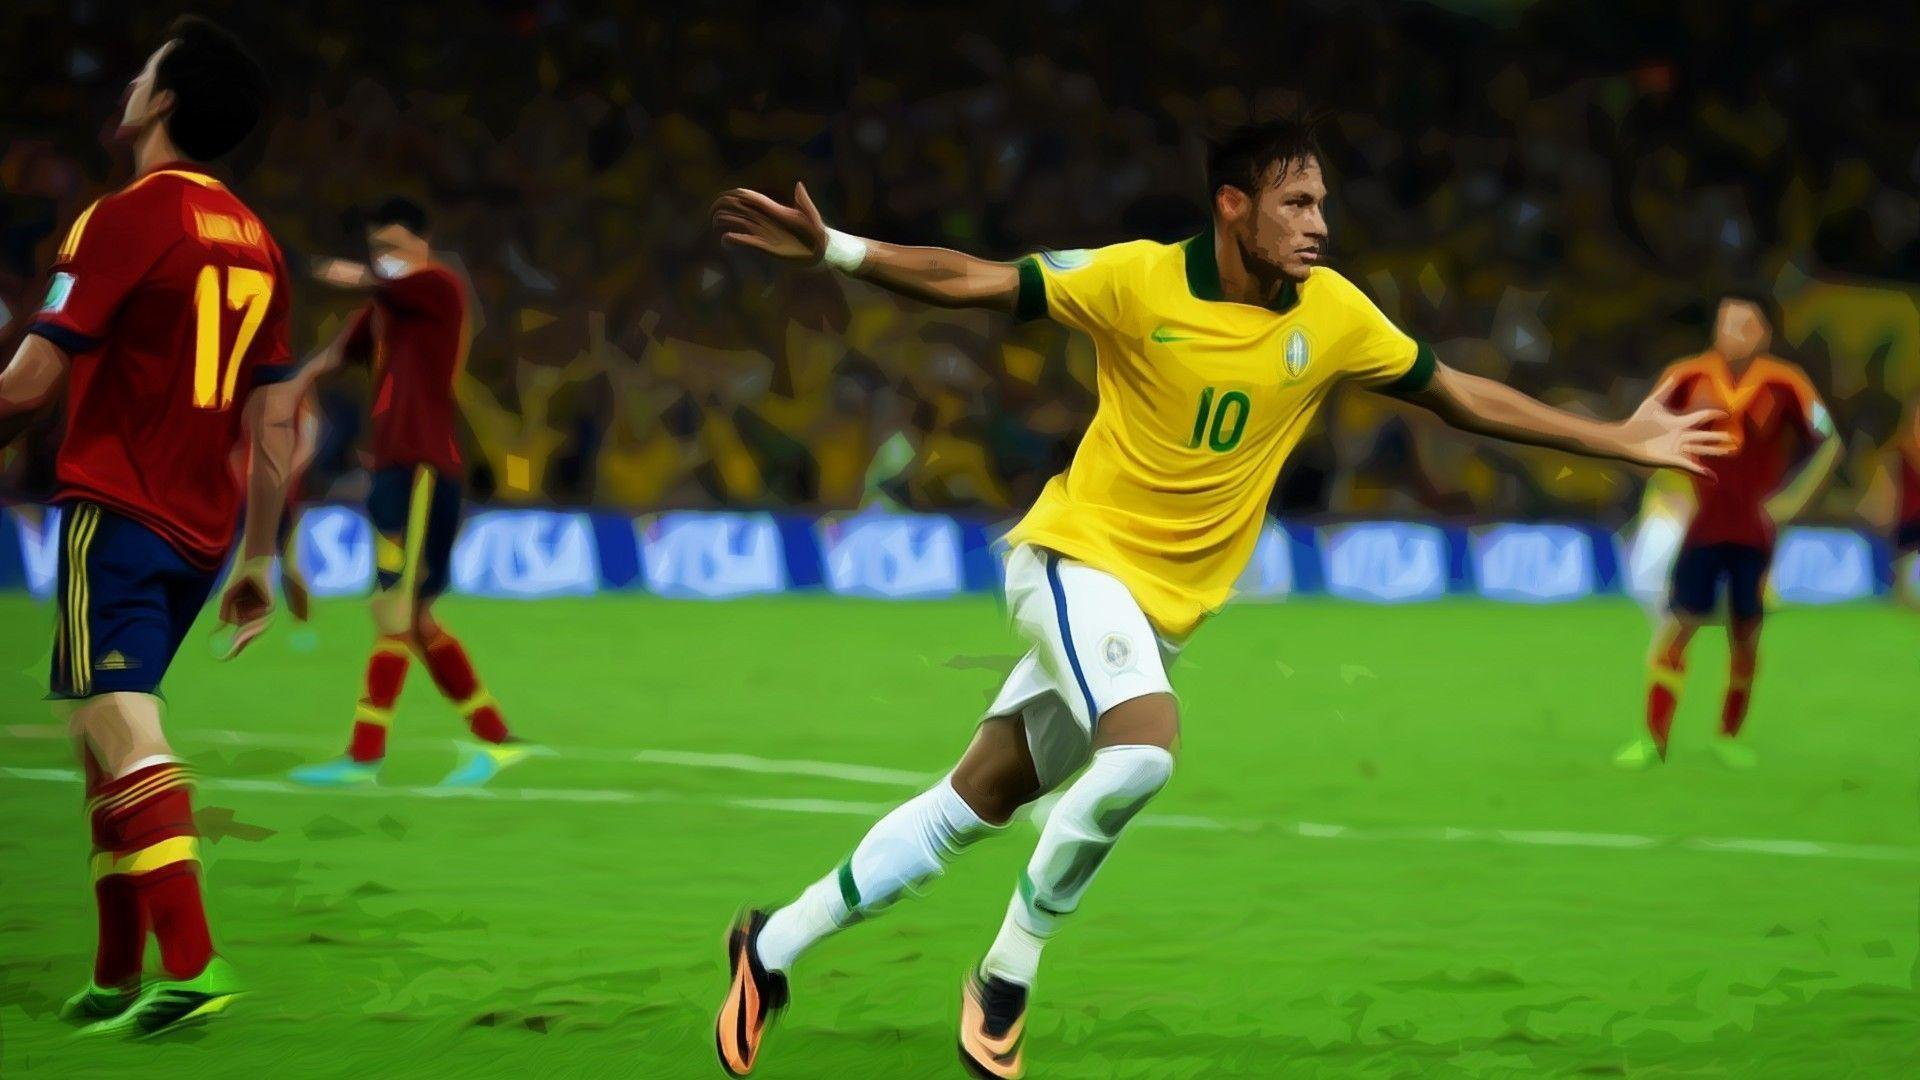 Soccer Wallpaper Neymar